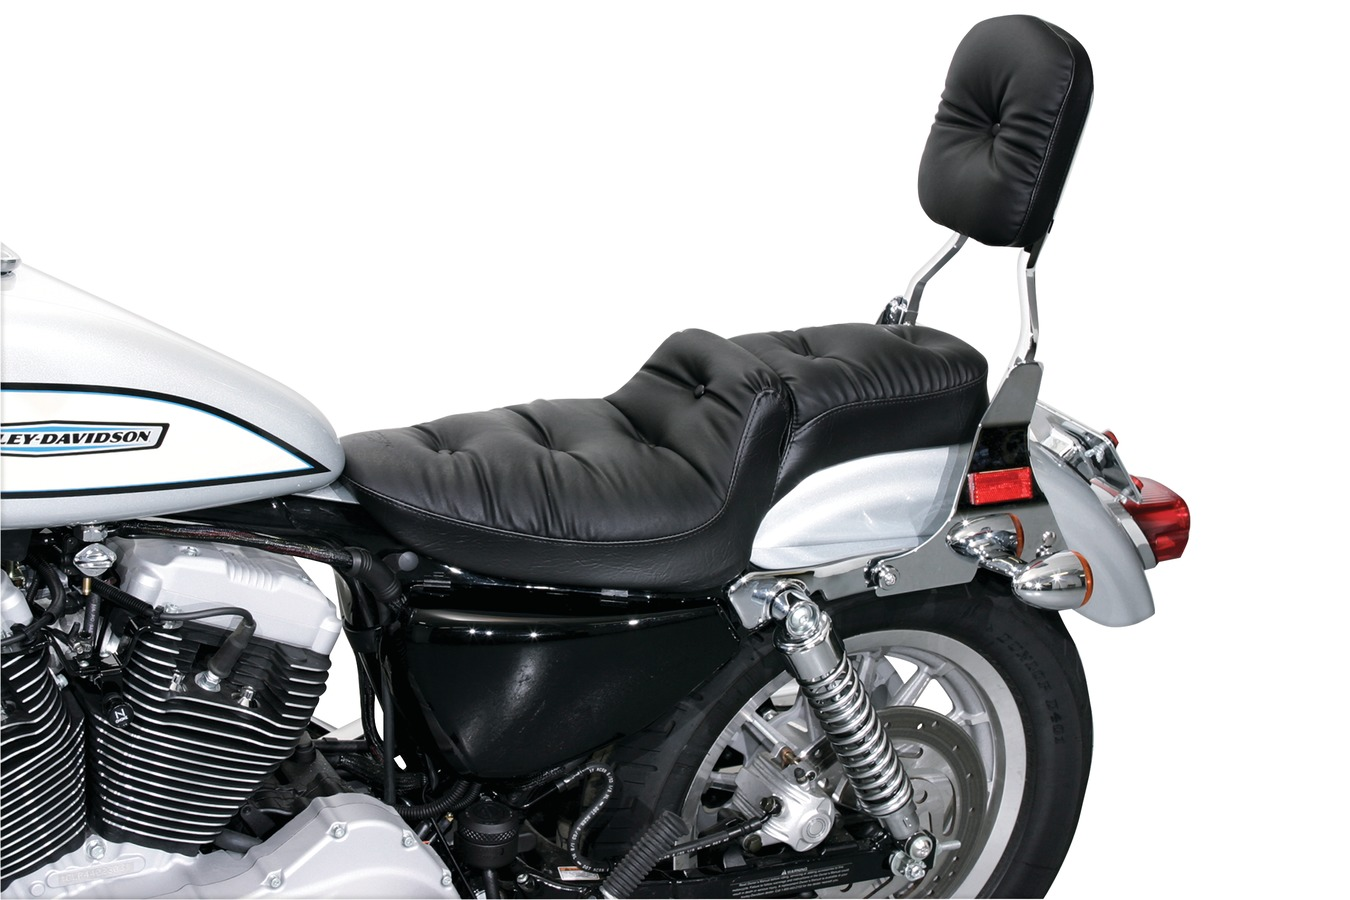 Duke One-Piece Seat for Harley-Davidson Sportster 2004-